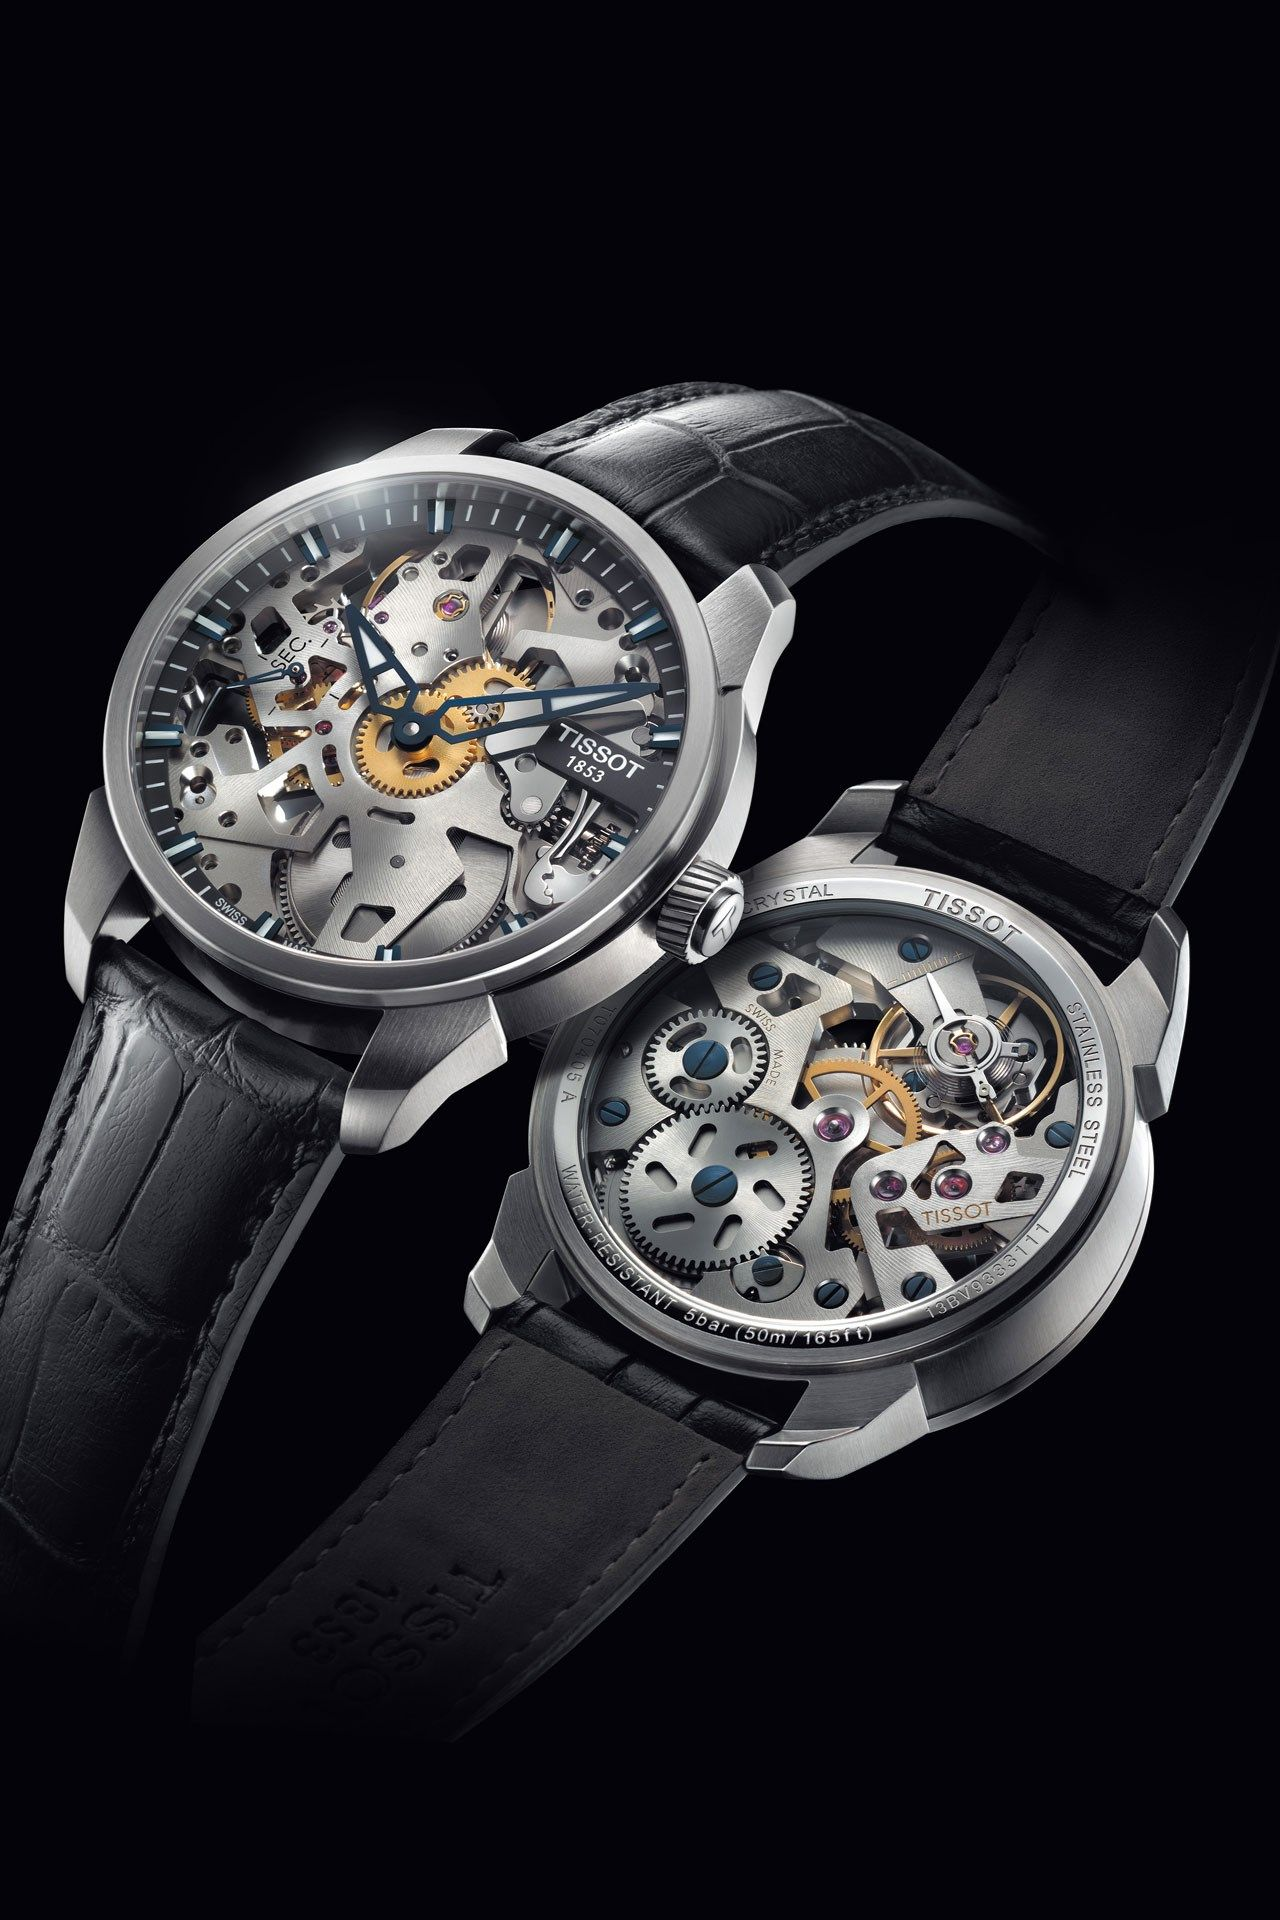 Watch Of The Week: Tissot's T-Complication Squelette ...